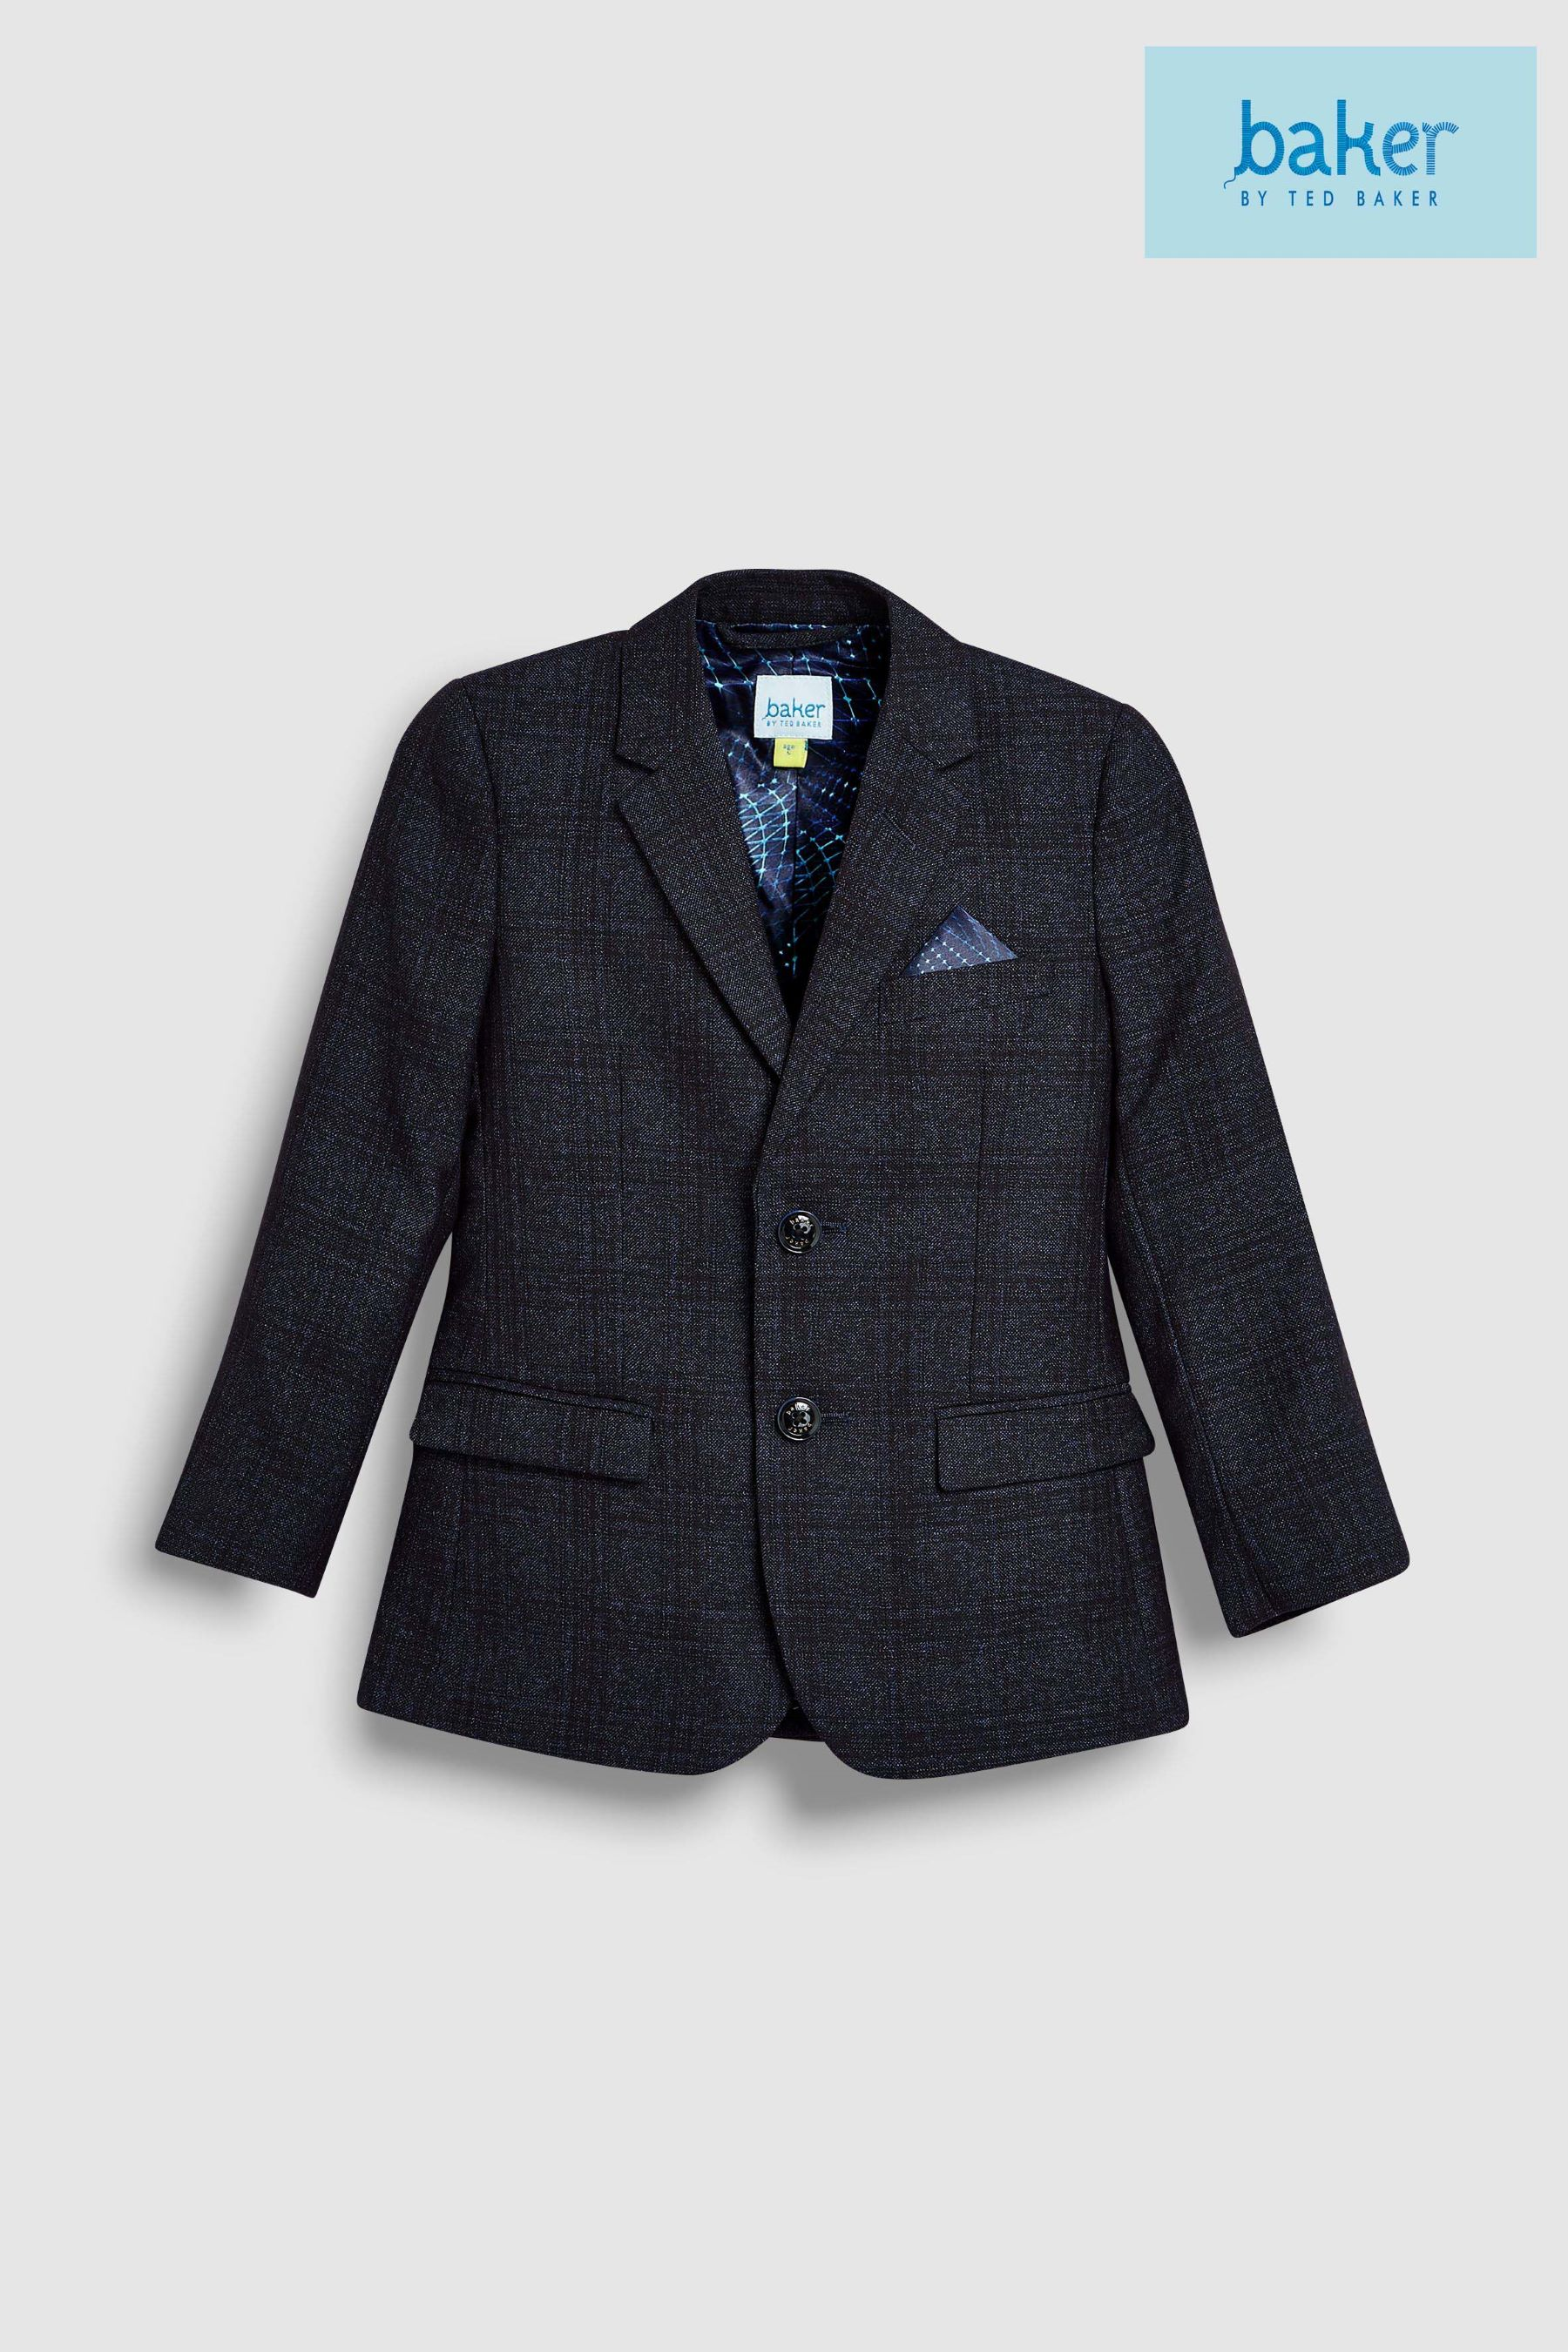 7cc085d0f3c29 Boys baker by Ted Baker Navy Teflon Formal Jacket - Blue